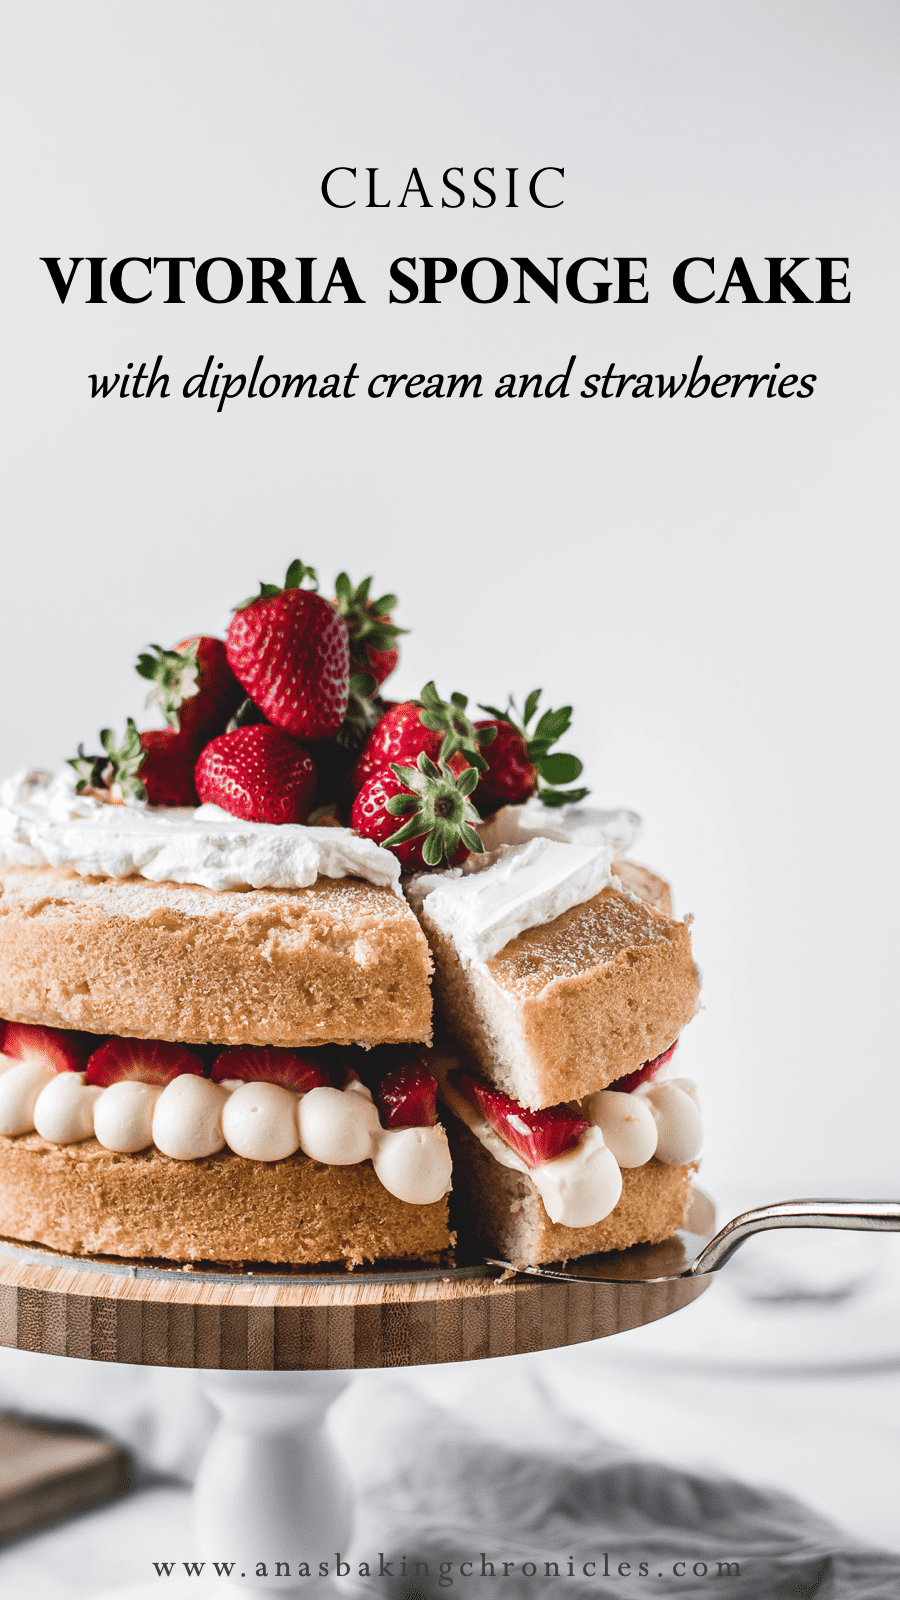 This is one of those traditional bakes that everyone\'s going to love. Soft and fluffy vanilla cake layers filled with light and airy diplomat cream and fresh strawberries. Delicious!⎪www.anasbakingchronicles.com